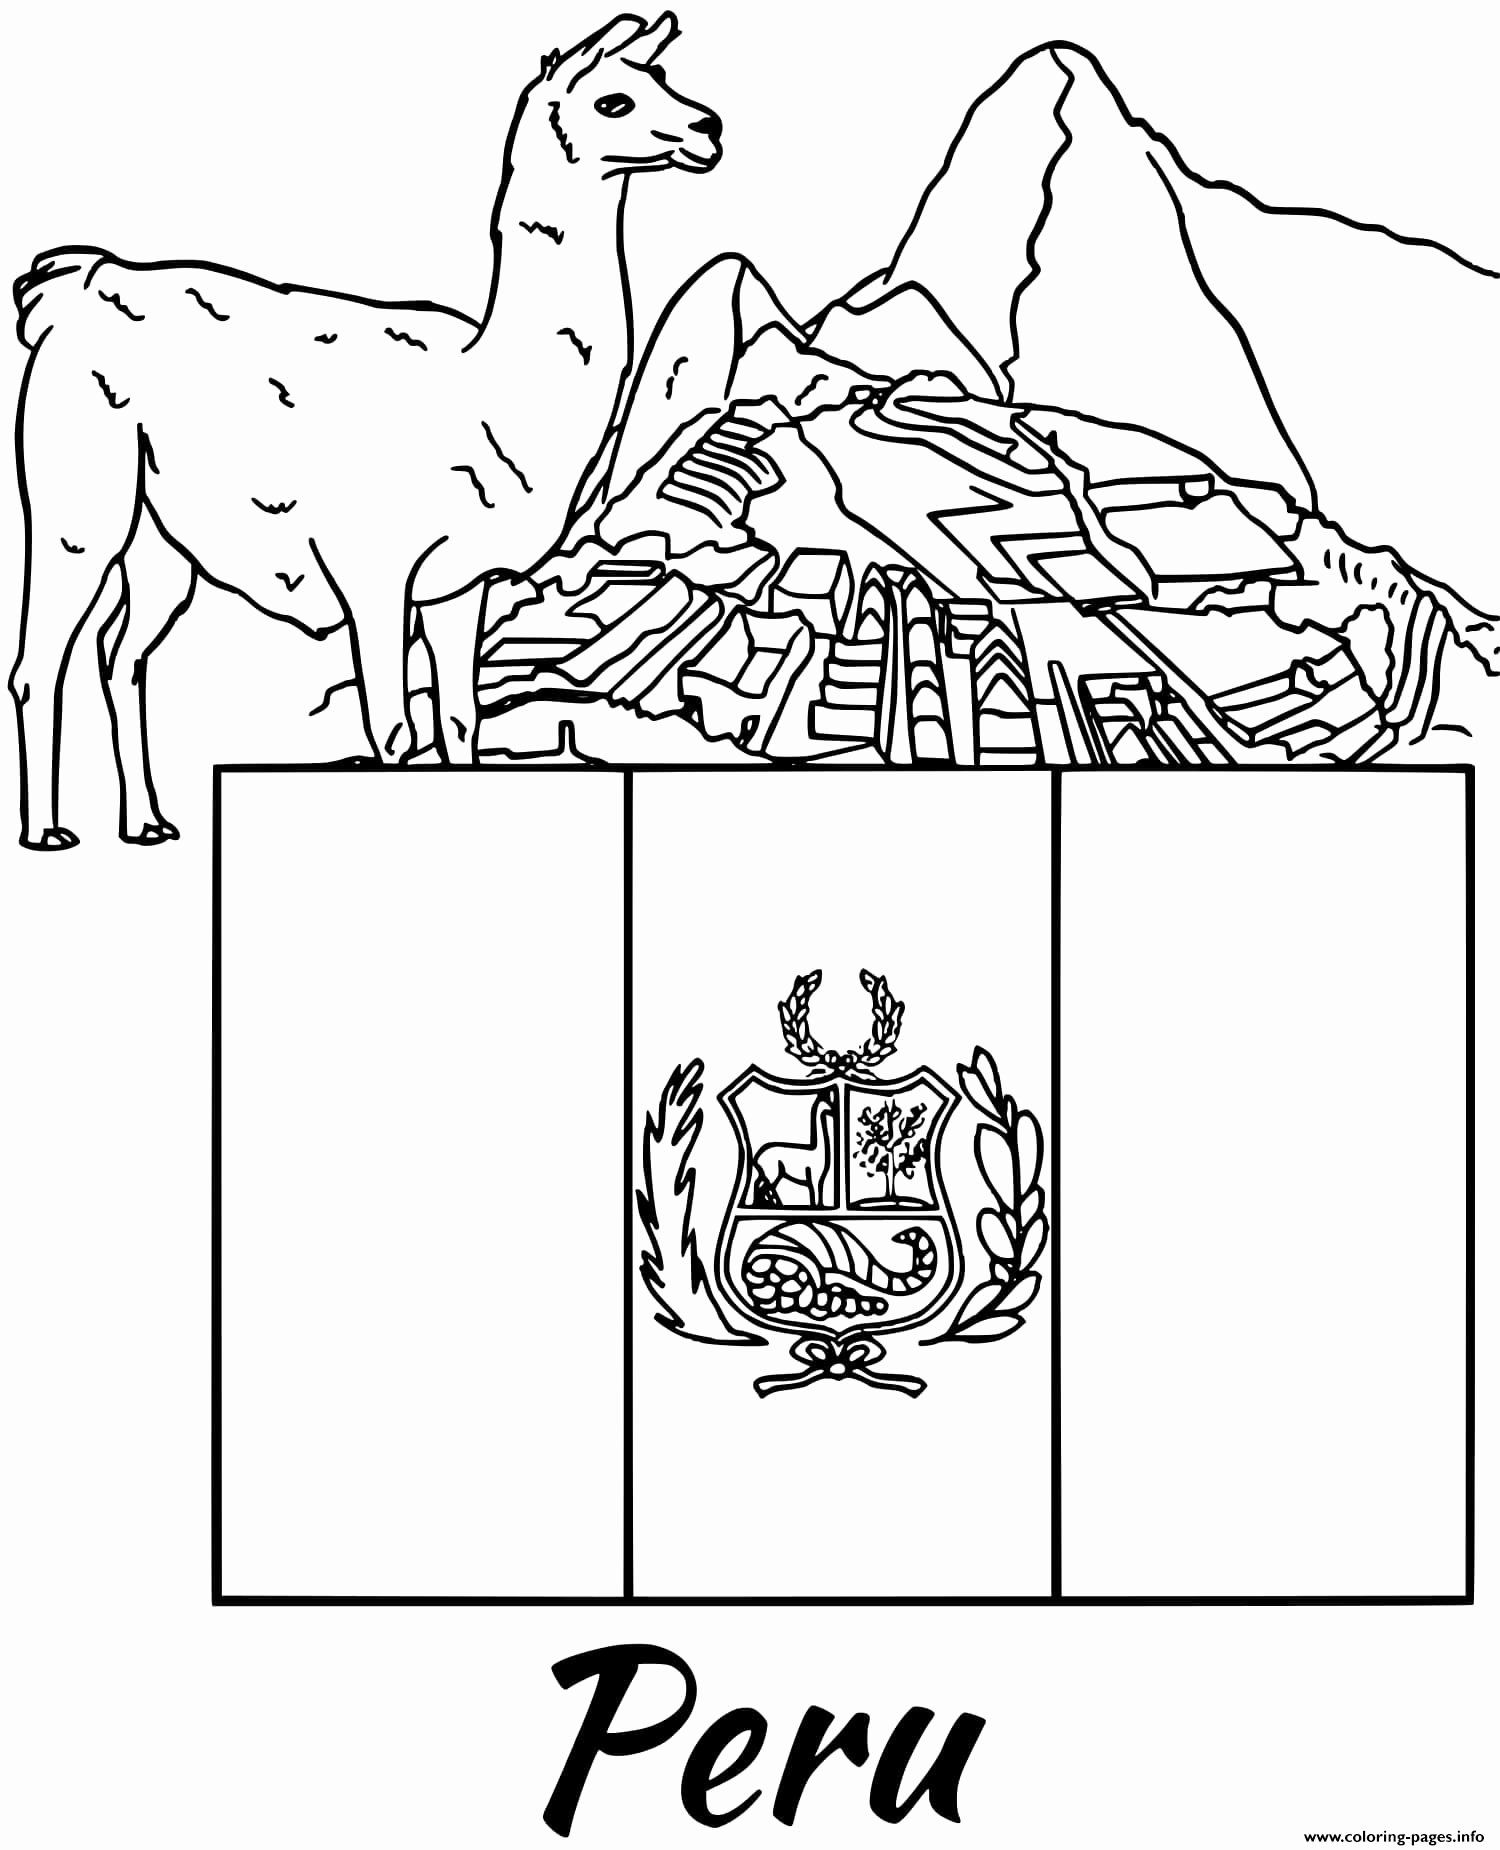 Peru Flag Coloring Pages Elegant Peru Flag Coloring Page Federalgrantsource Flag Coloring Pages Coloring Pages Frog Coloring Pages